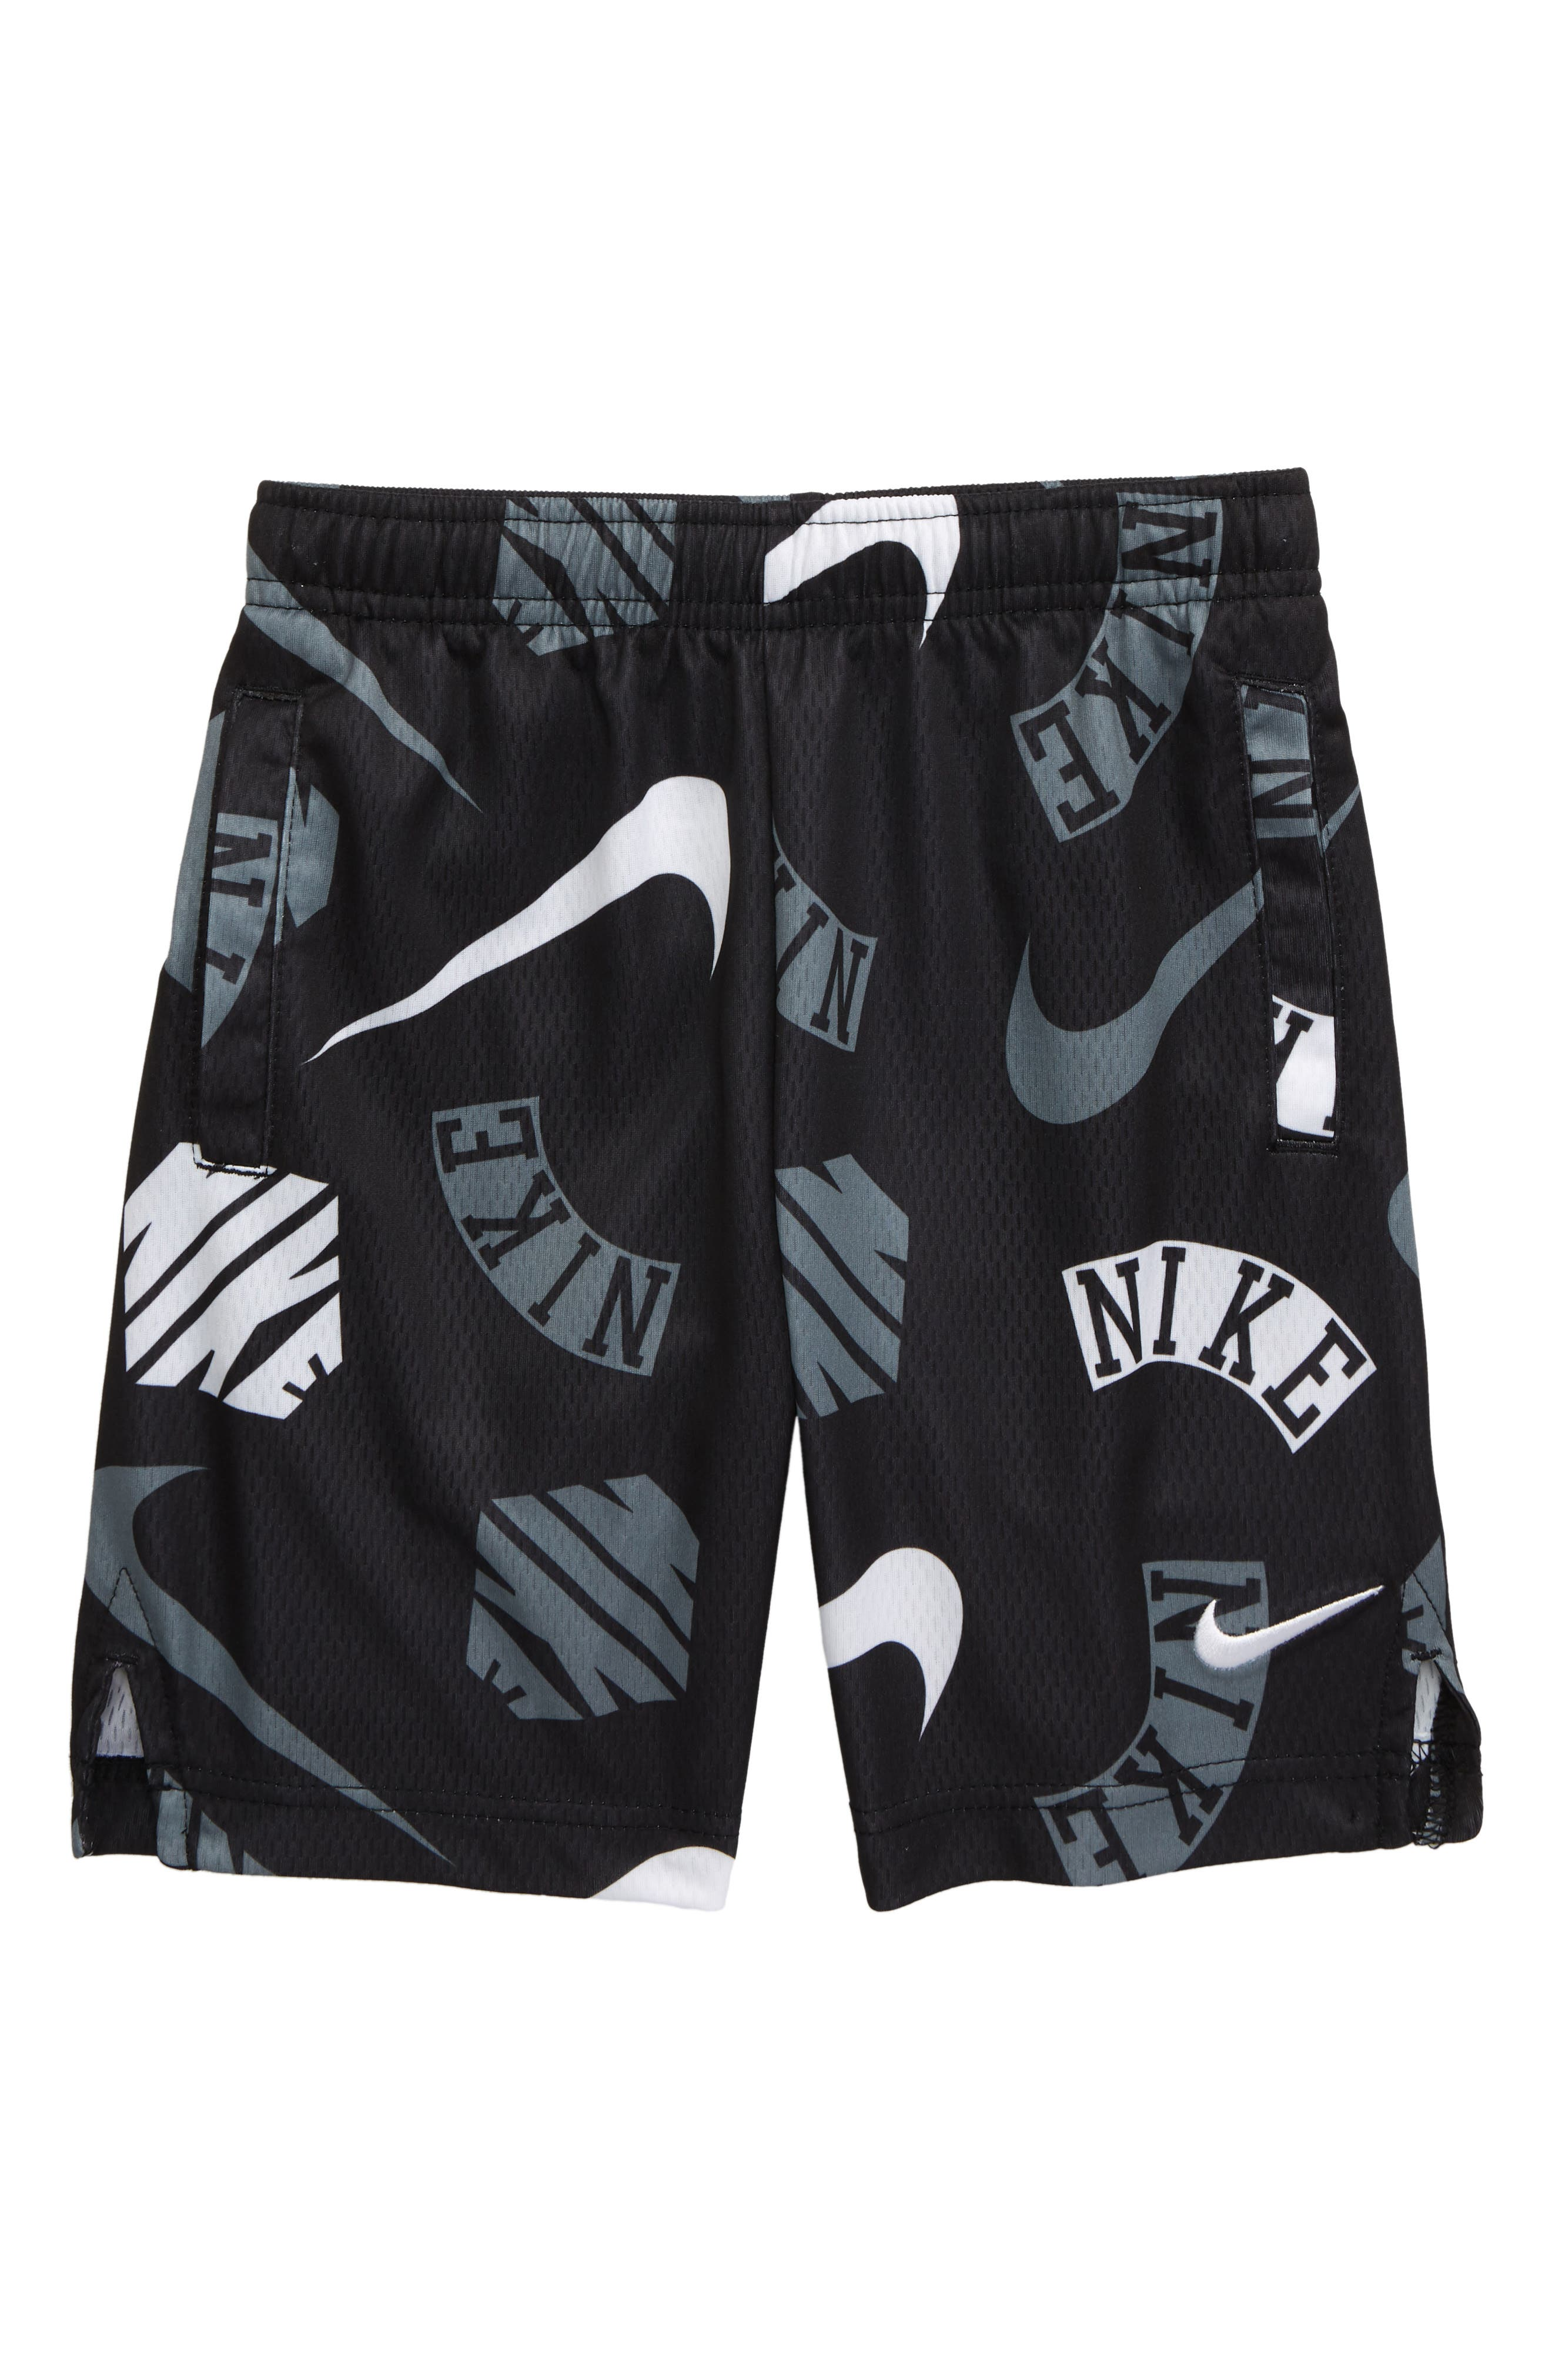 Boys Nike Dry Print Athletic Shorts